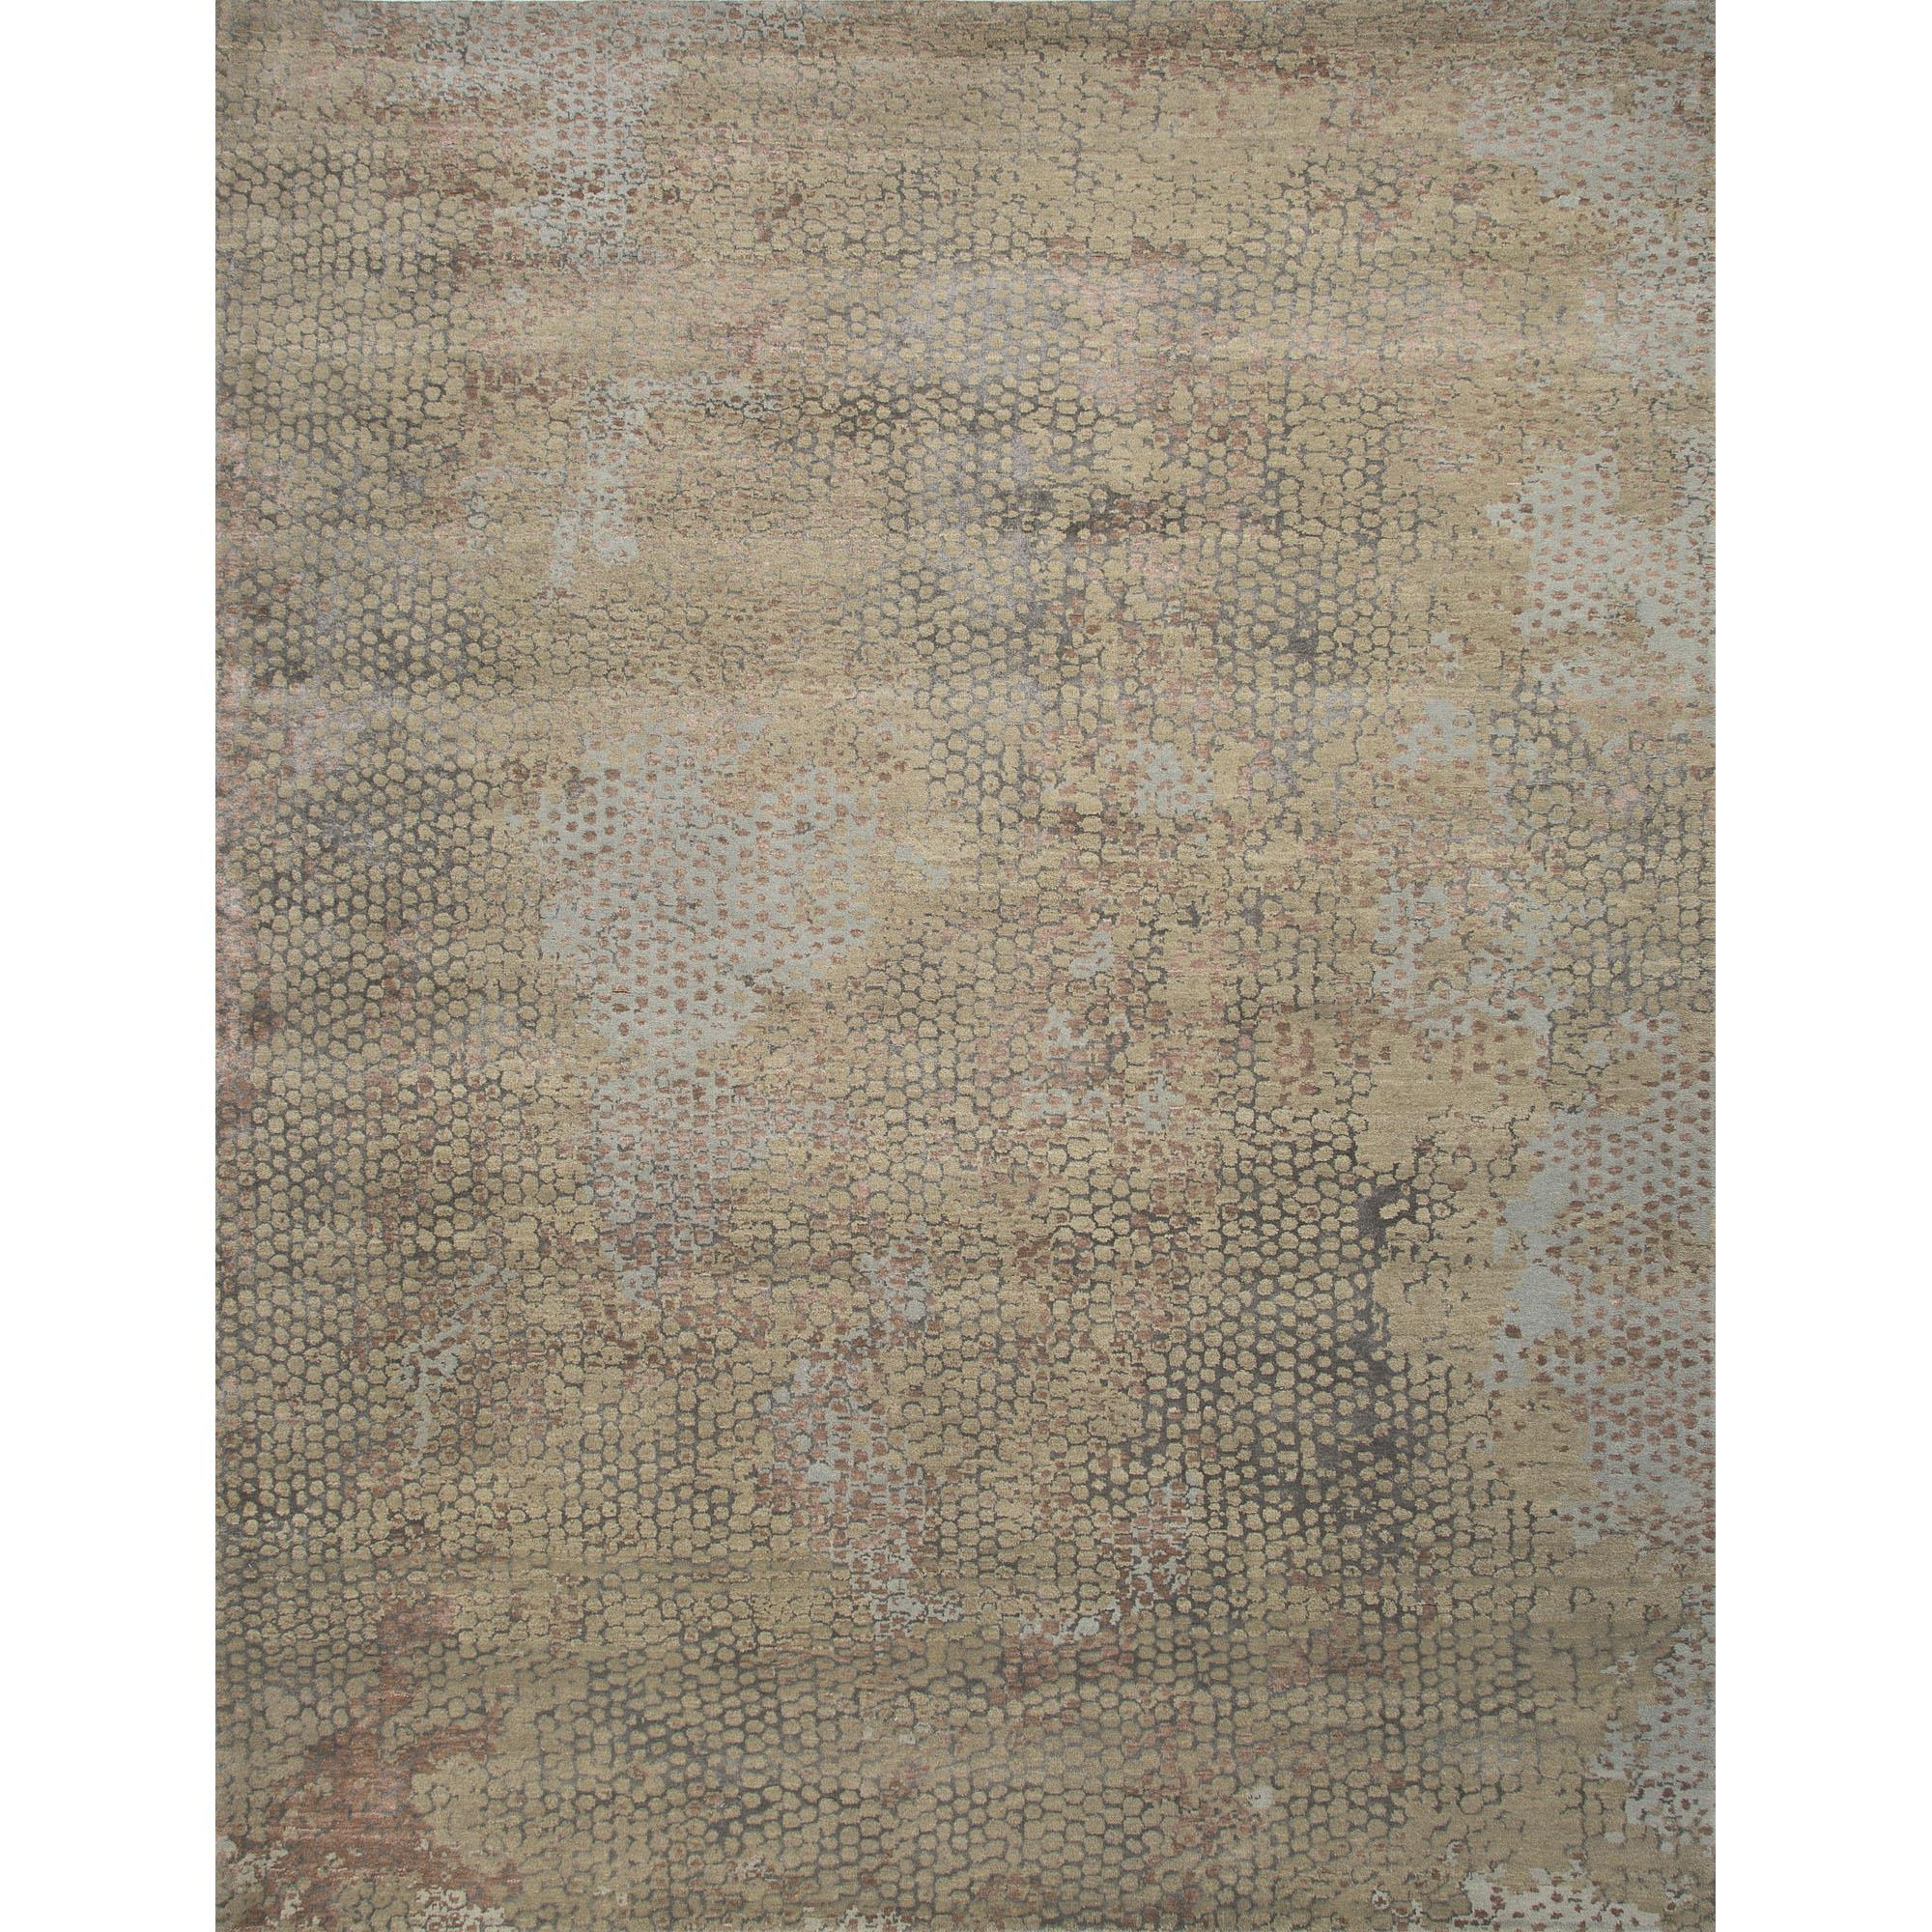 JAIPUR Rugs Chaos Theory By Kavi 2 x 3 Rug - Item Number: RUG116986